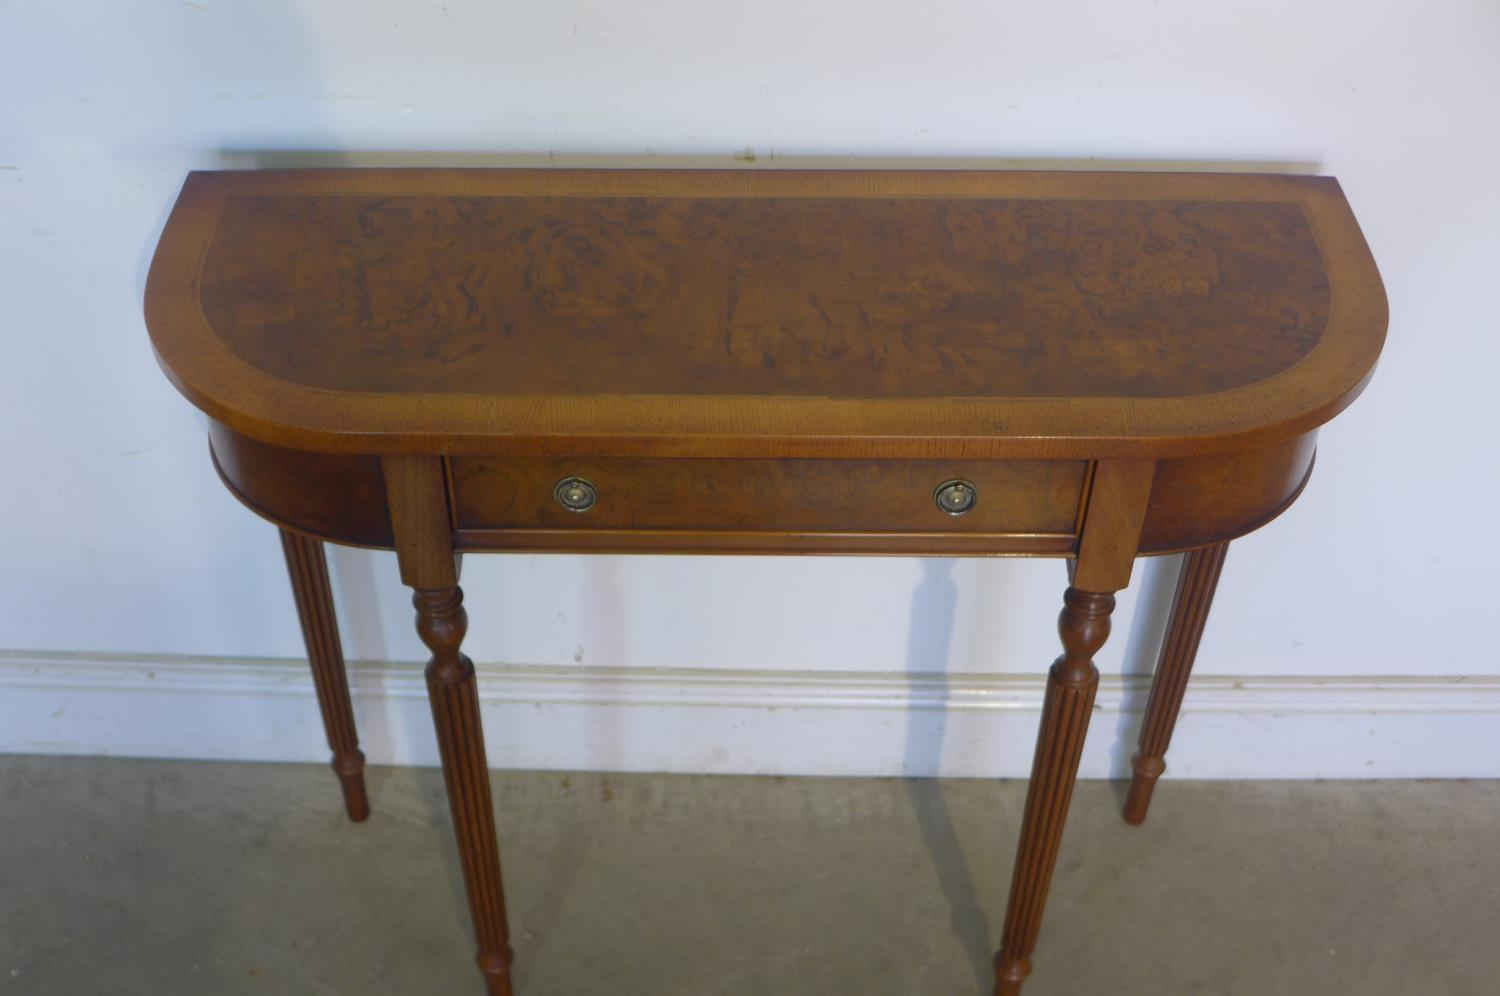 Lot 40 - A walnut D shaped hall table with a single drawer on turned legs, made by a local craftsman to a